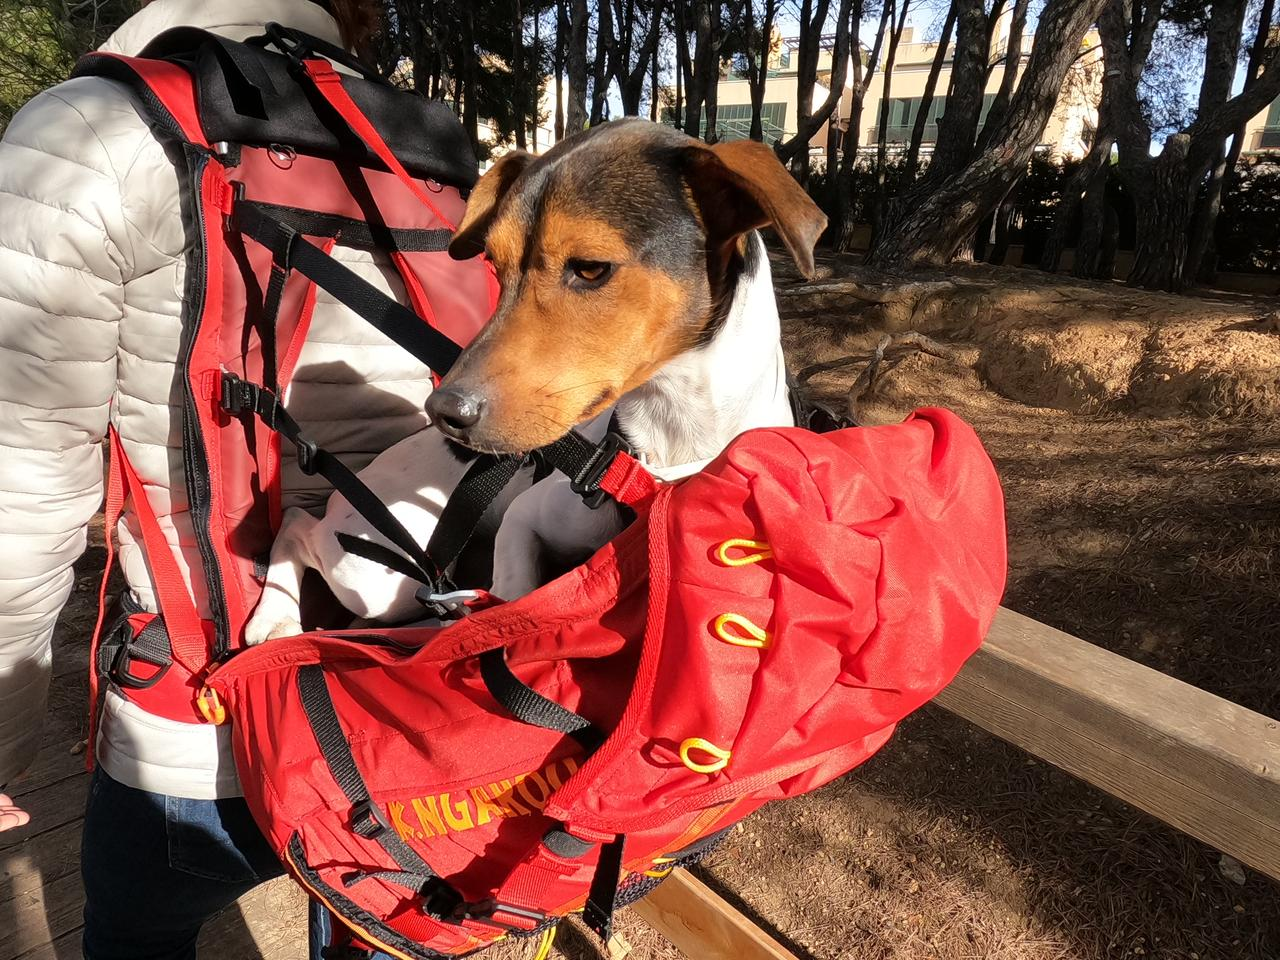 The Roo backpack, totin' a dog